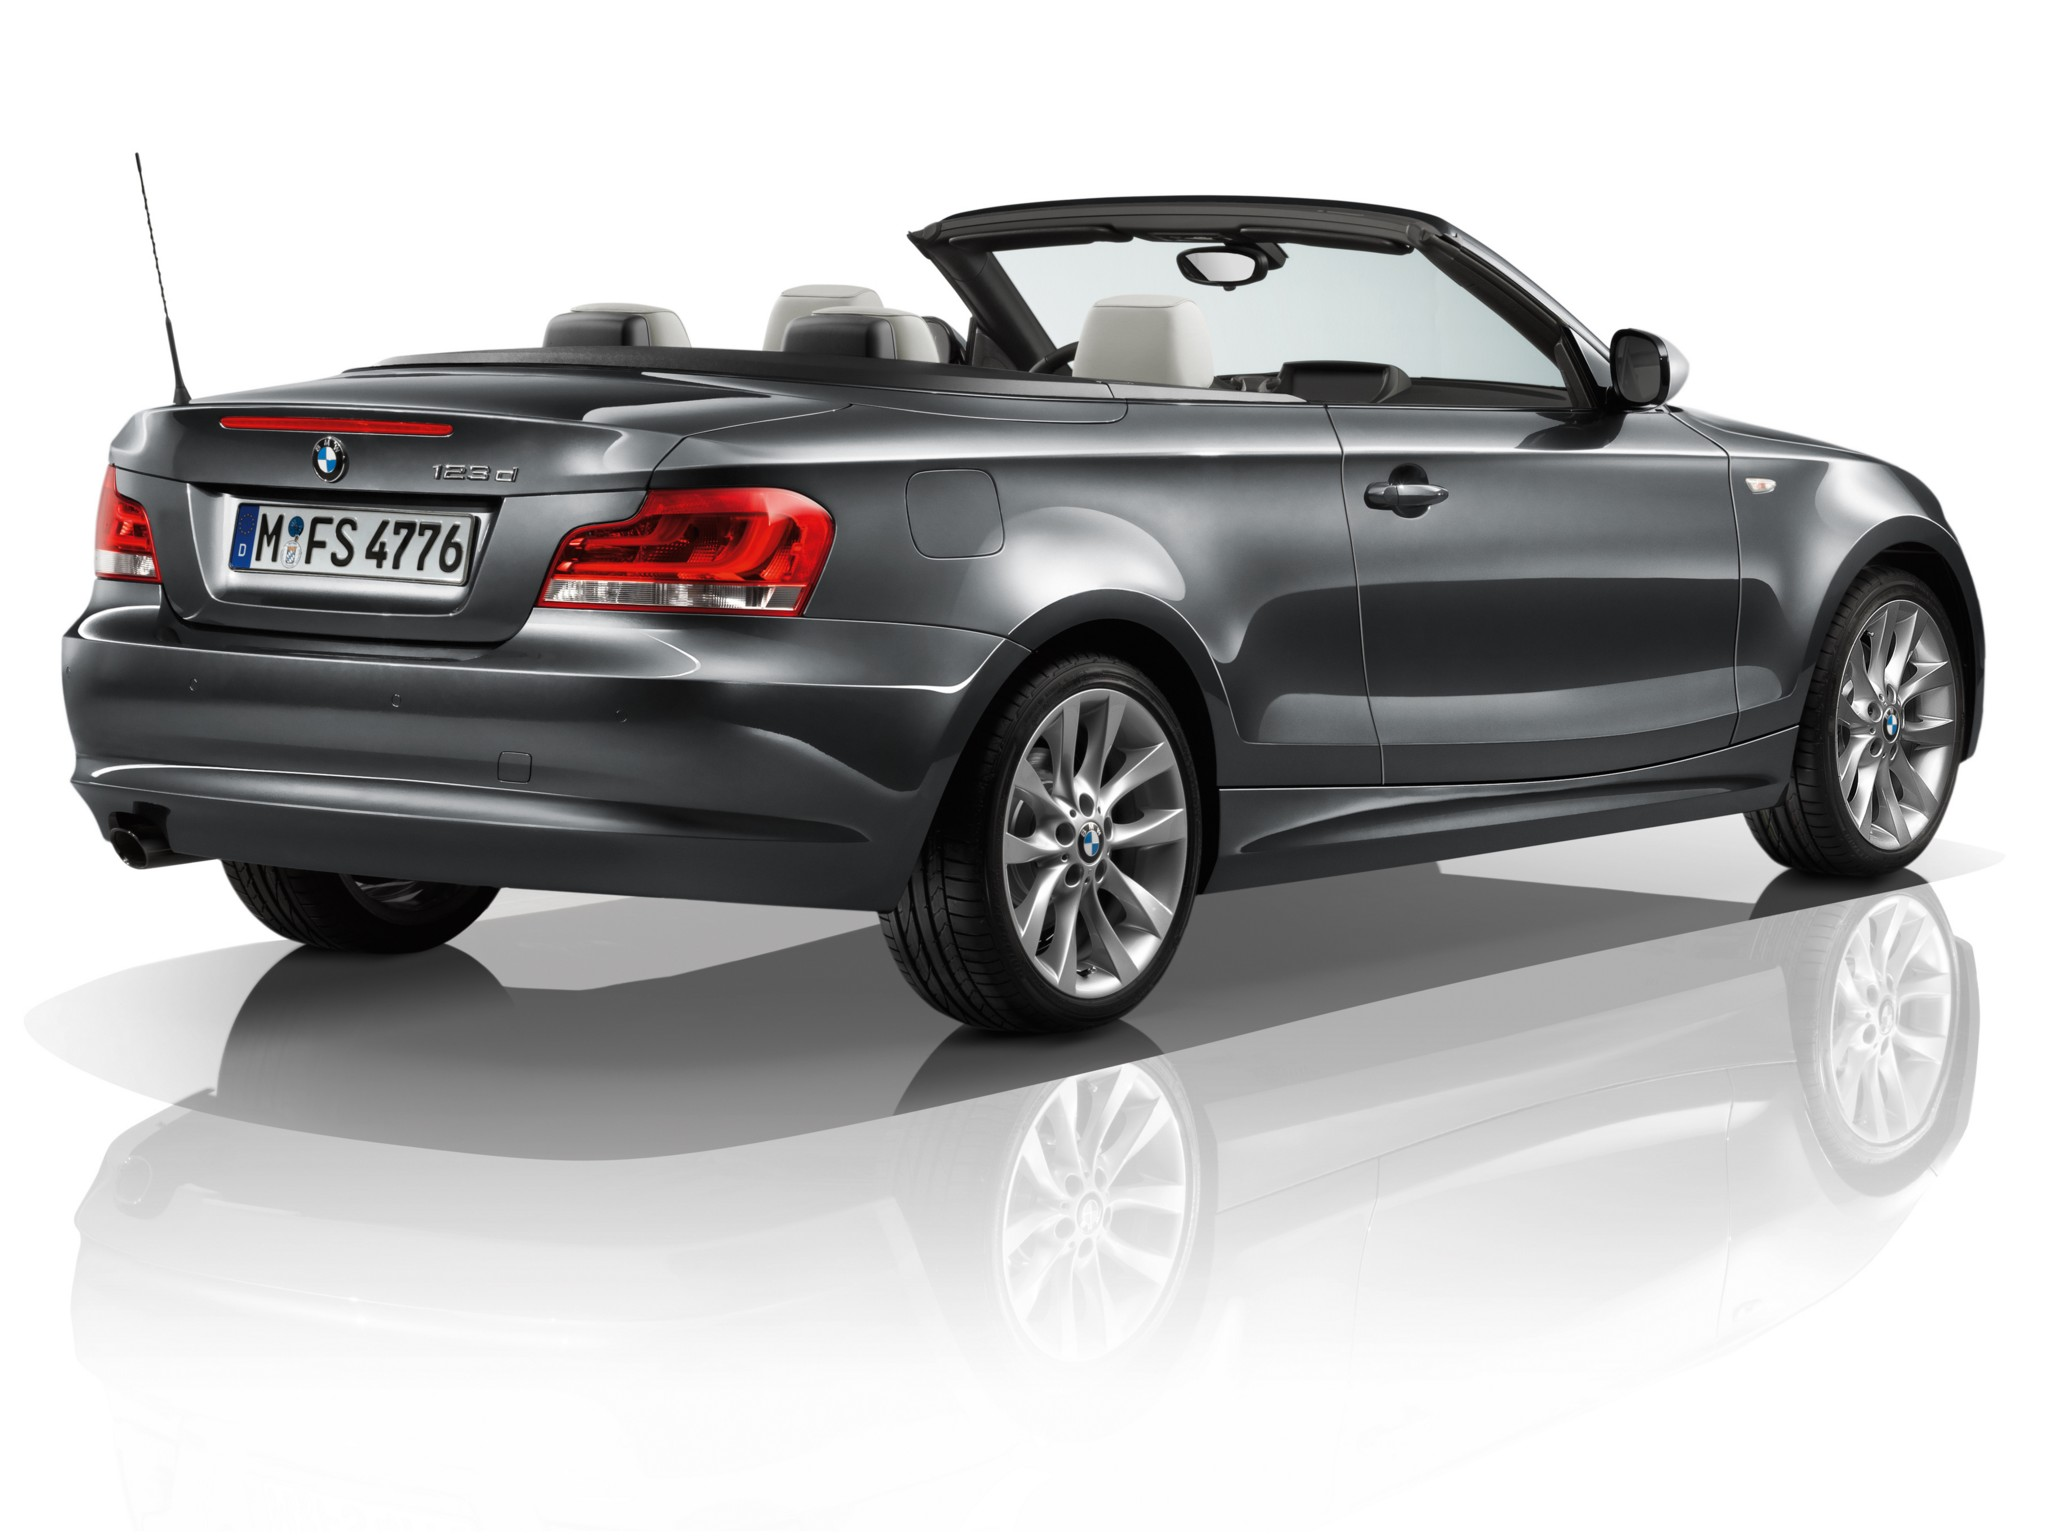 bmw 1 series cabriolet e88 specs 2010 2011 2012 2013 autoevolution. Black Bedroom Furniture Sets. Home Design Ideas